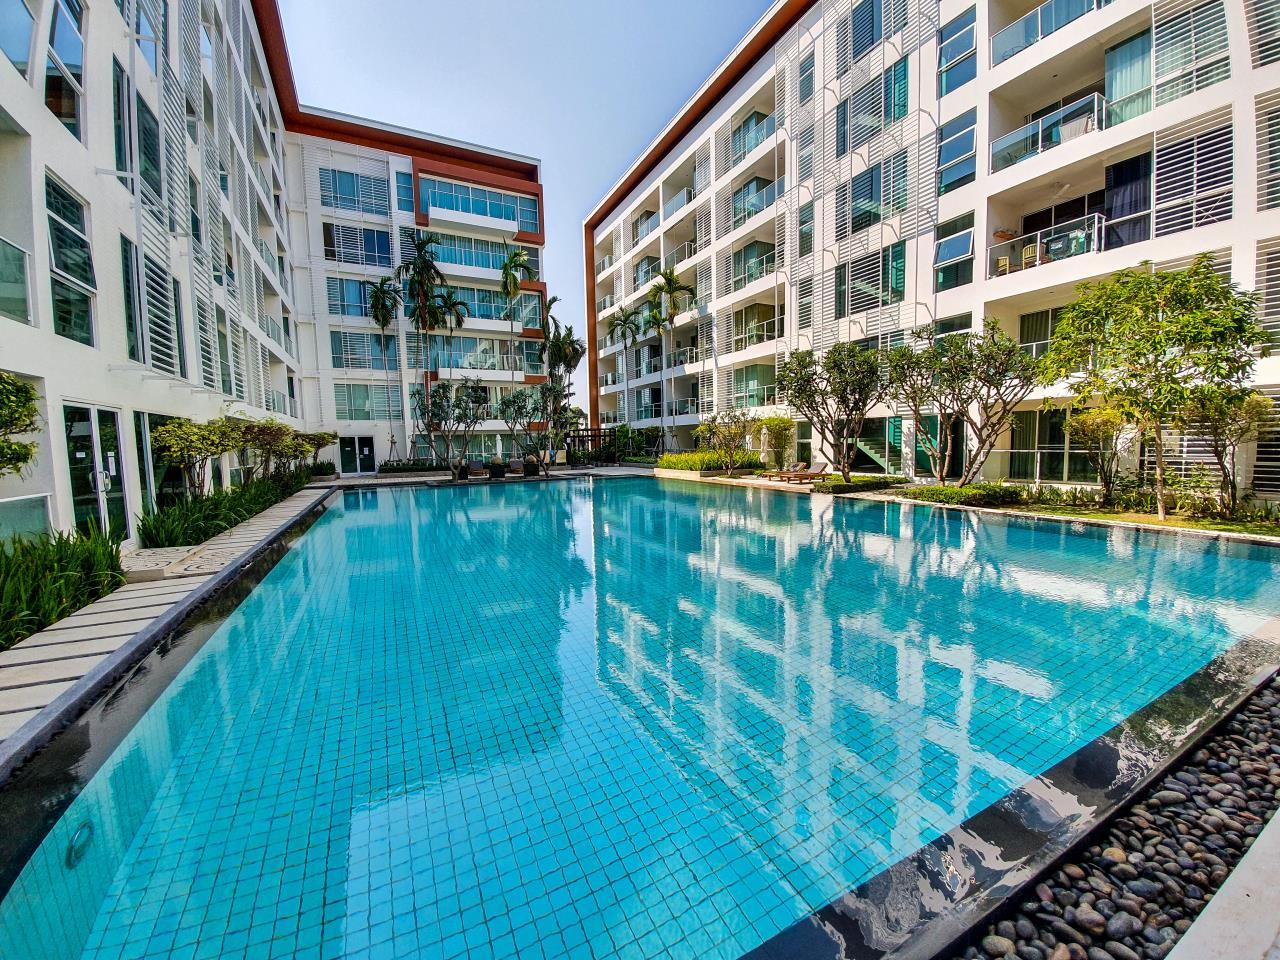 HOME - Real Estate Service Agency's The Breeze Hua Hin / 2 Beds (FOR RENT), เดอะ บรีซ หัวหิน / 2 ห้องนอน (ให้เช่า) T008 20